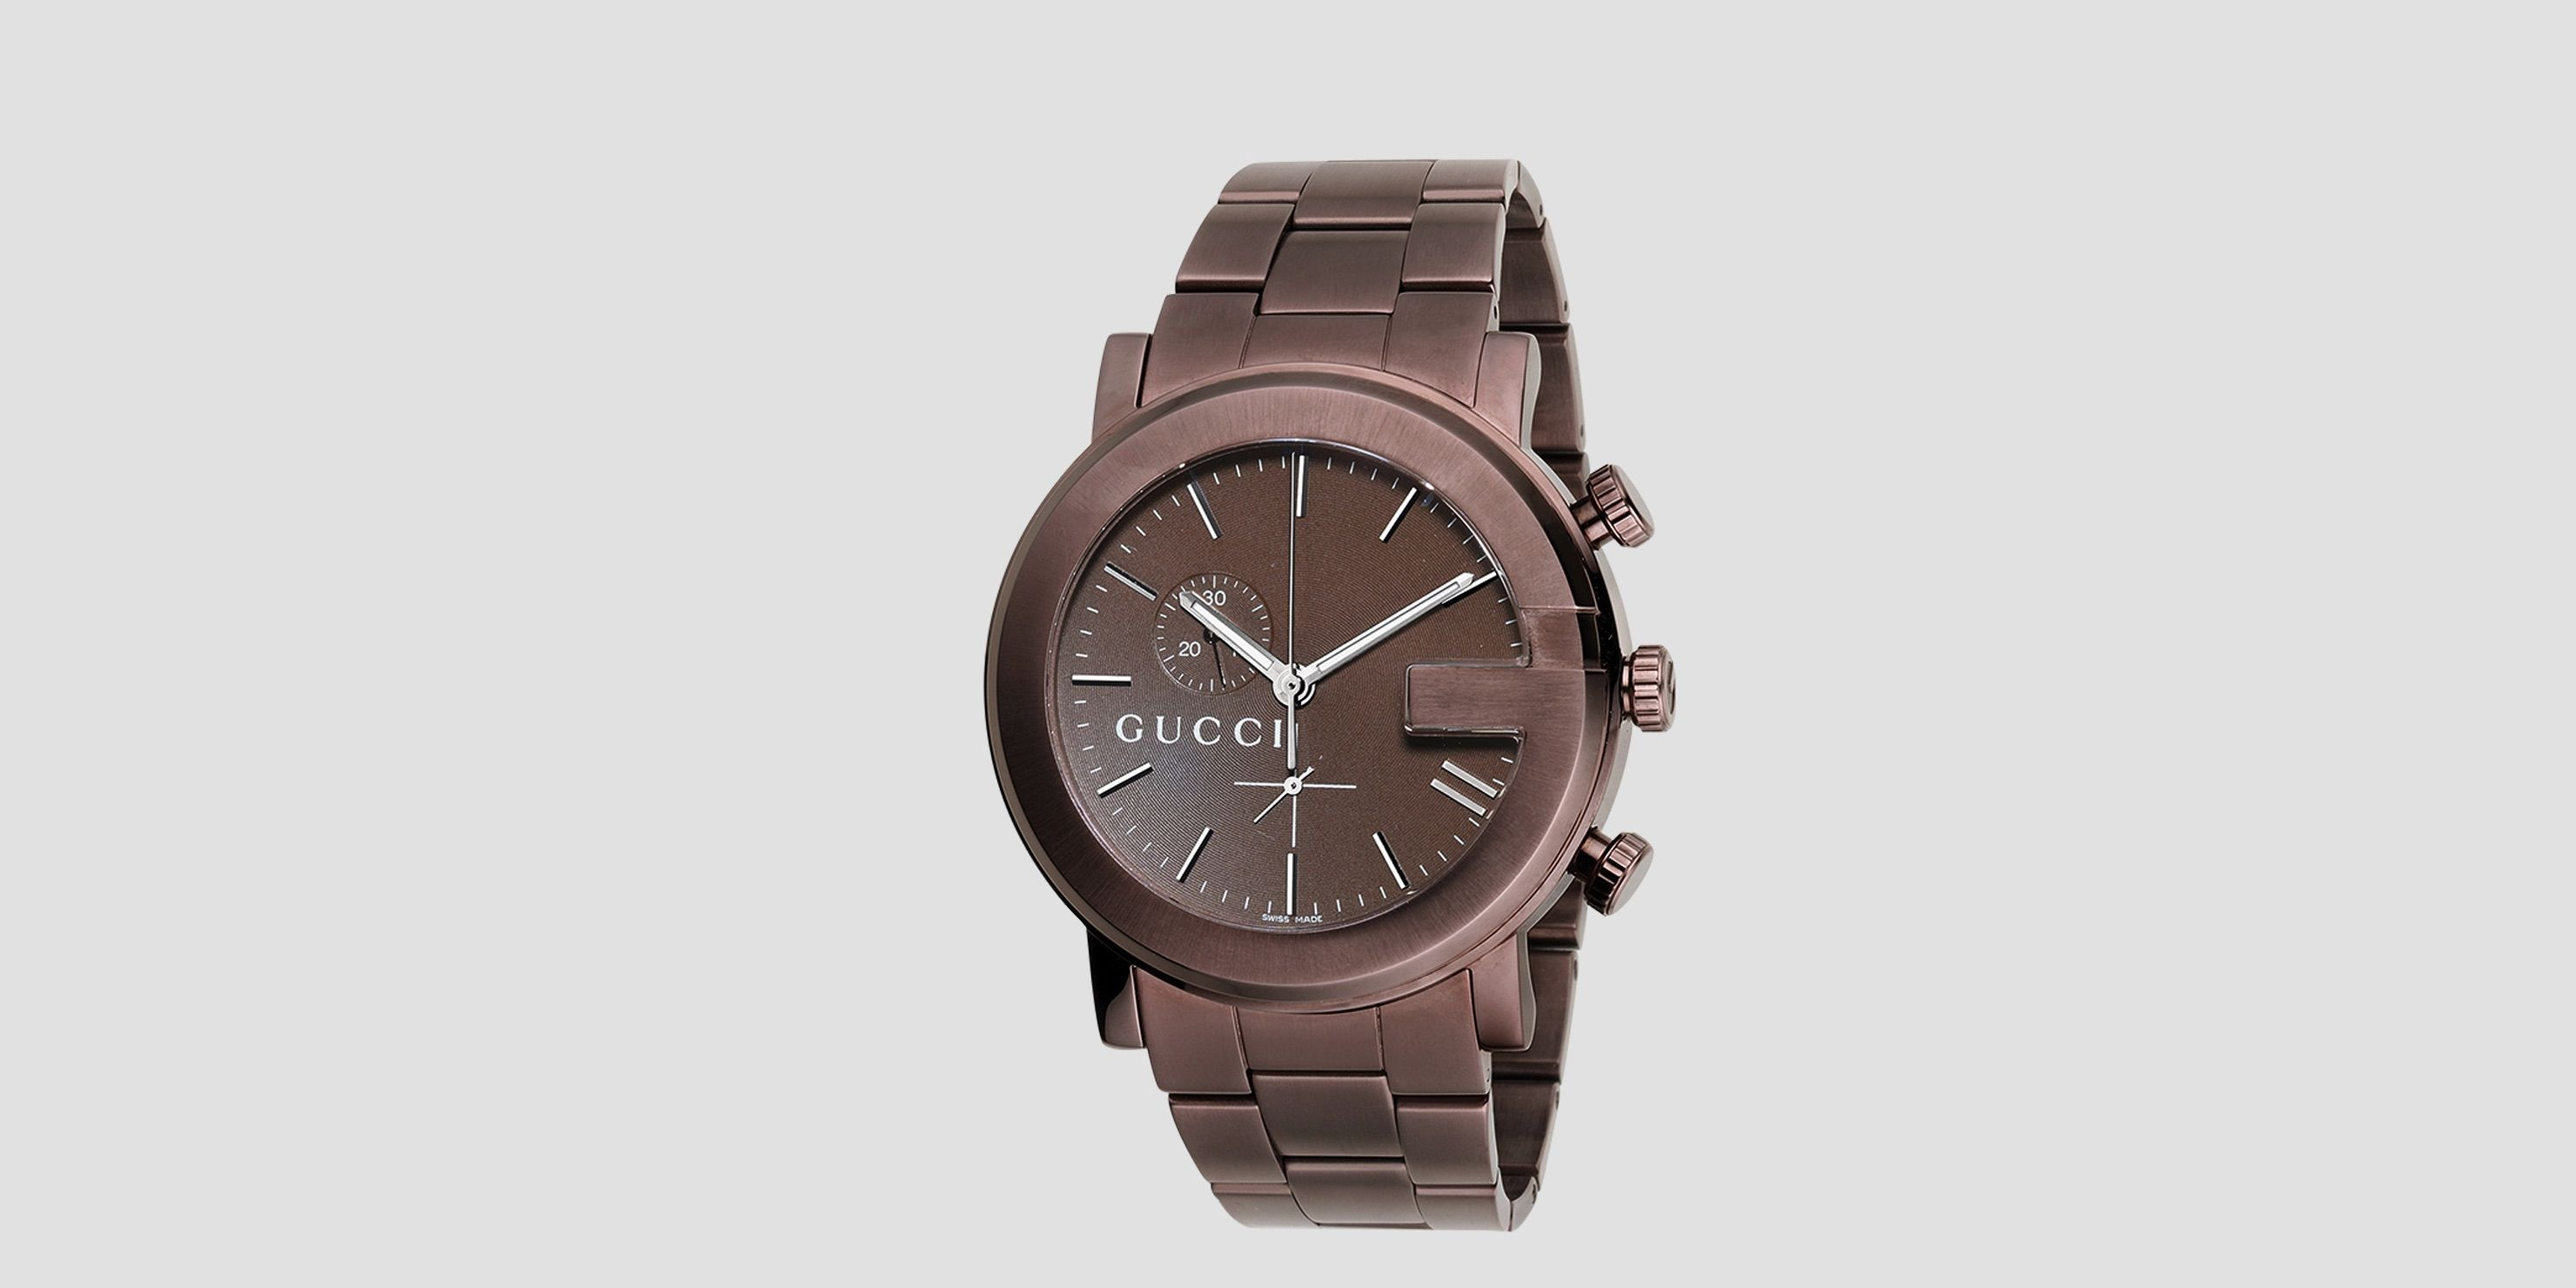 aca75c18205 Get a great deal with this online auction for a Gucci watch presented by  Property Room on behalf of a law enforcement or public agency client.